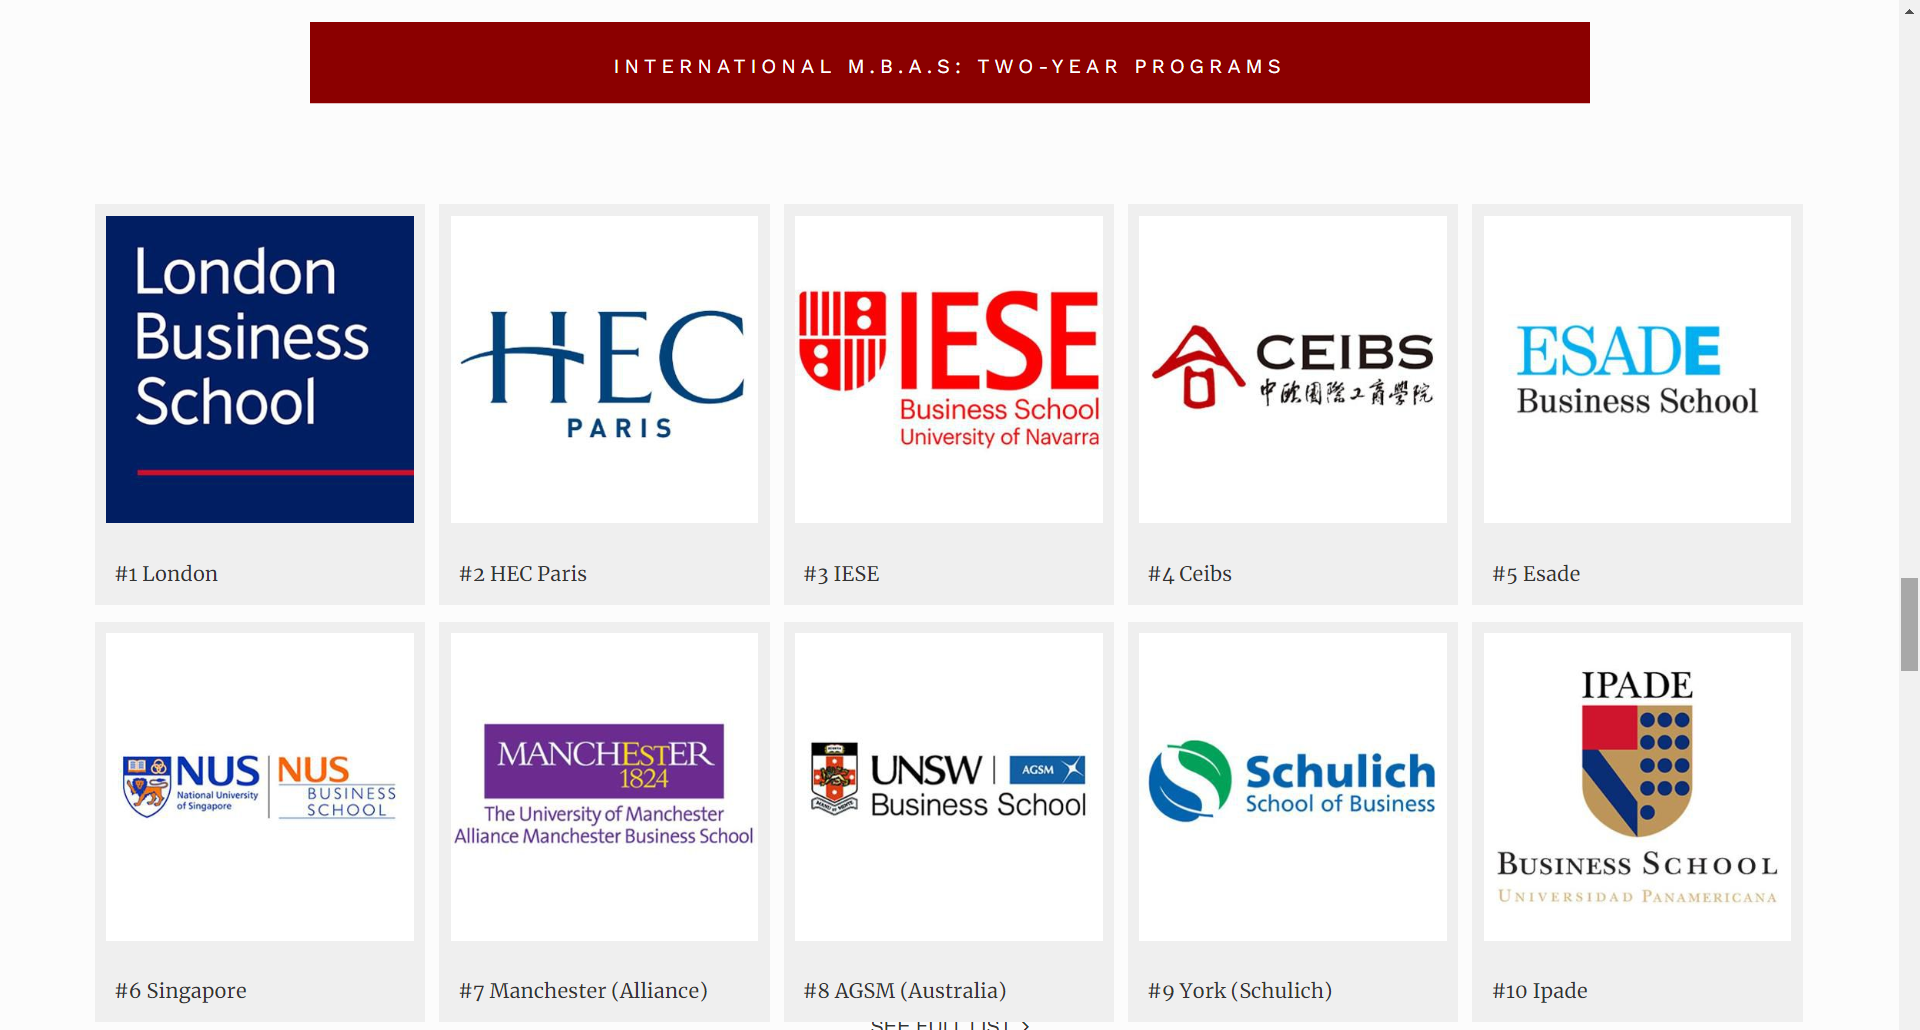 Forbes-2019-international-2-year-programs.png